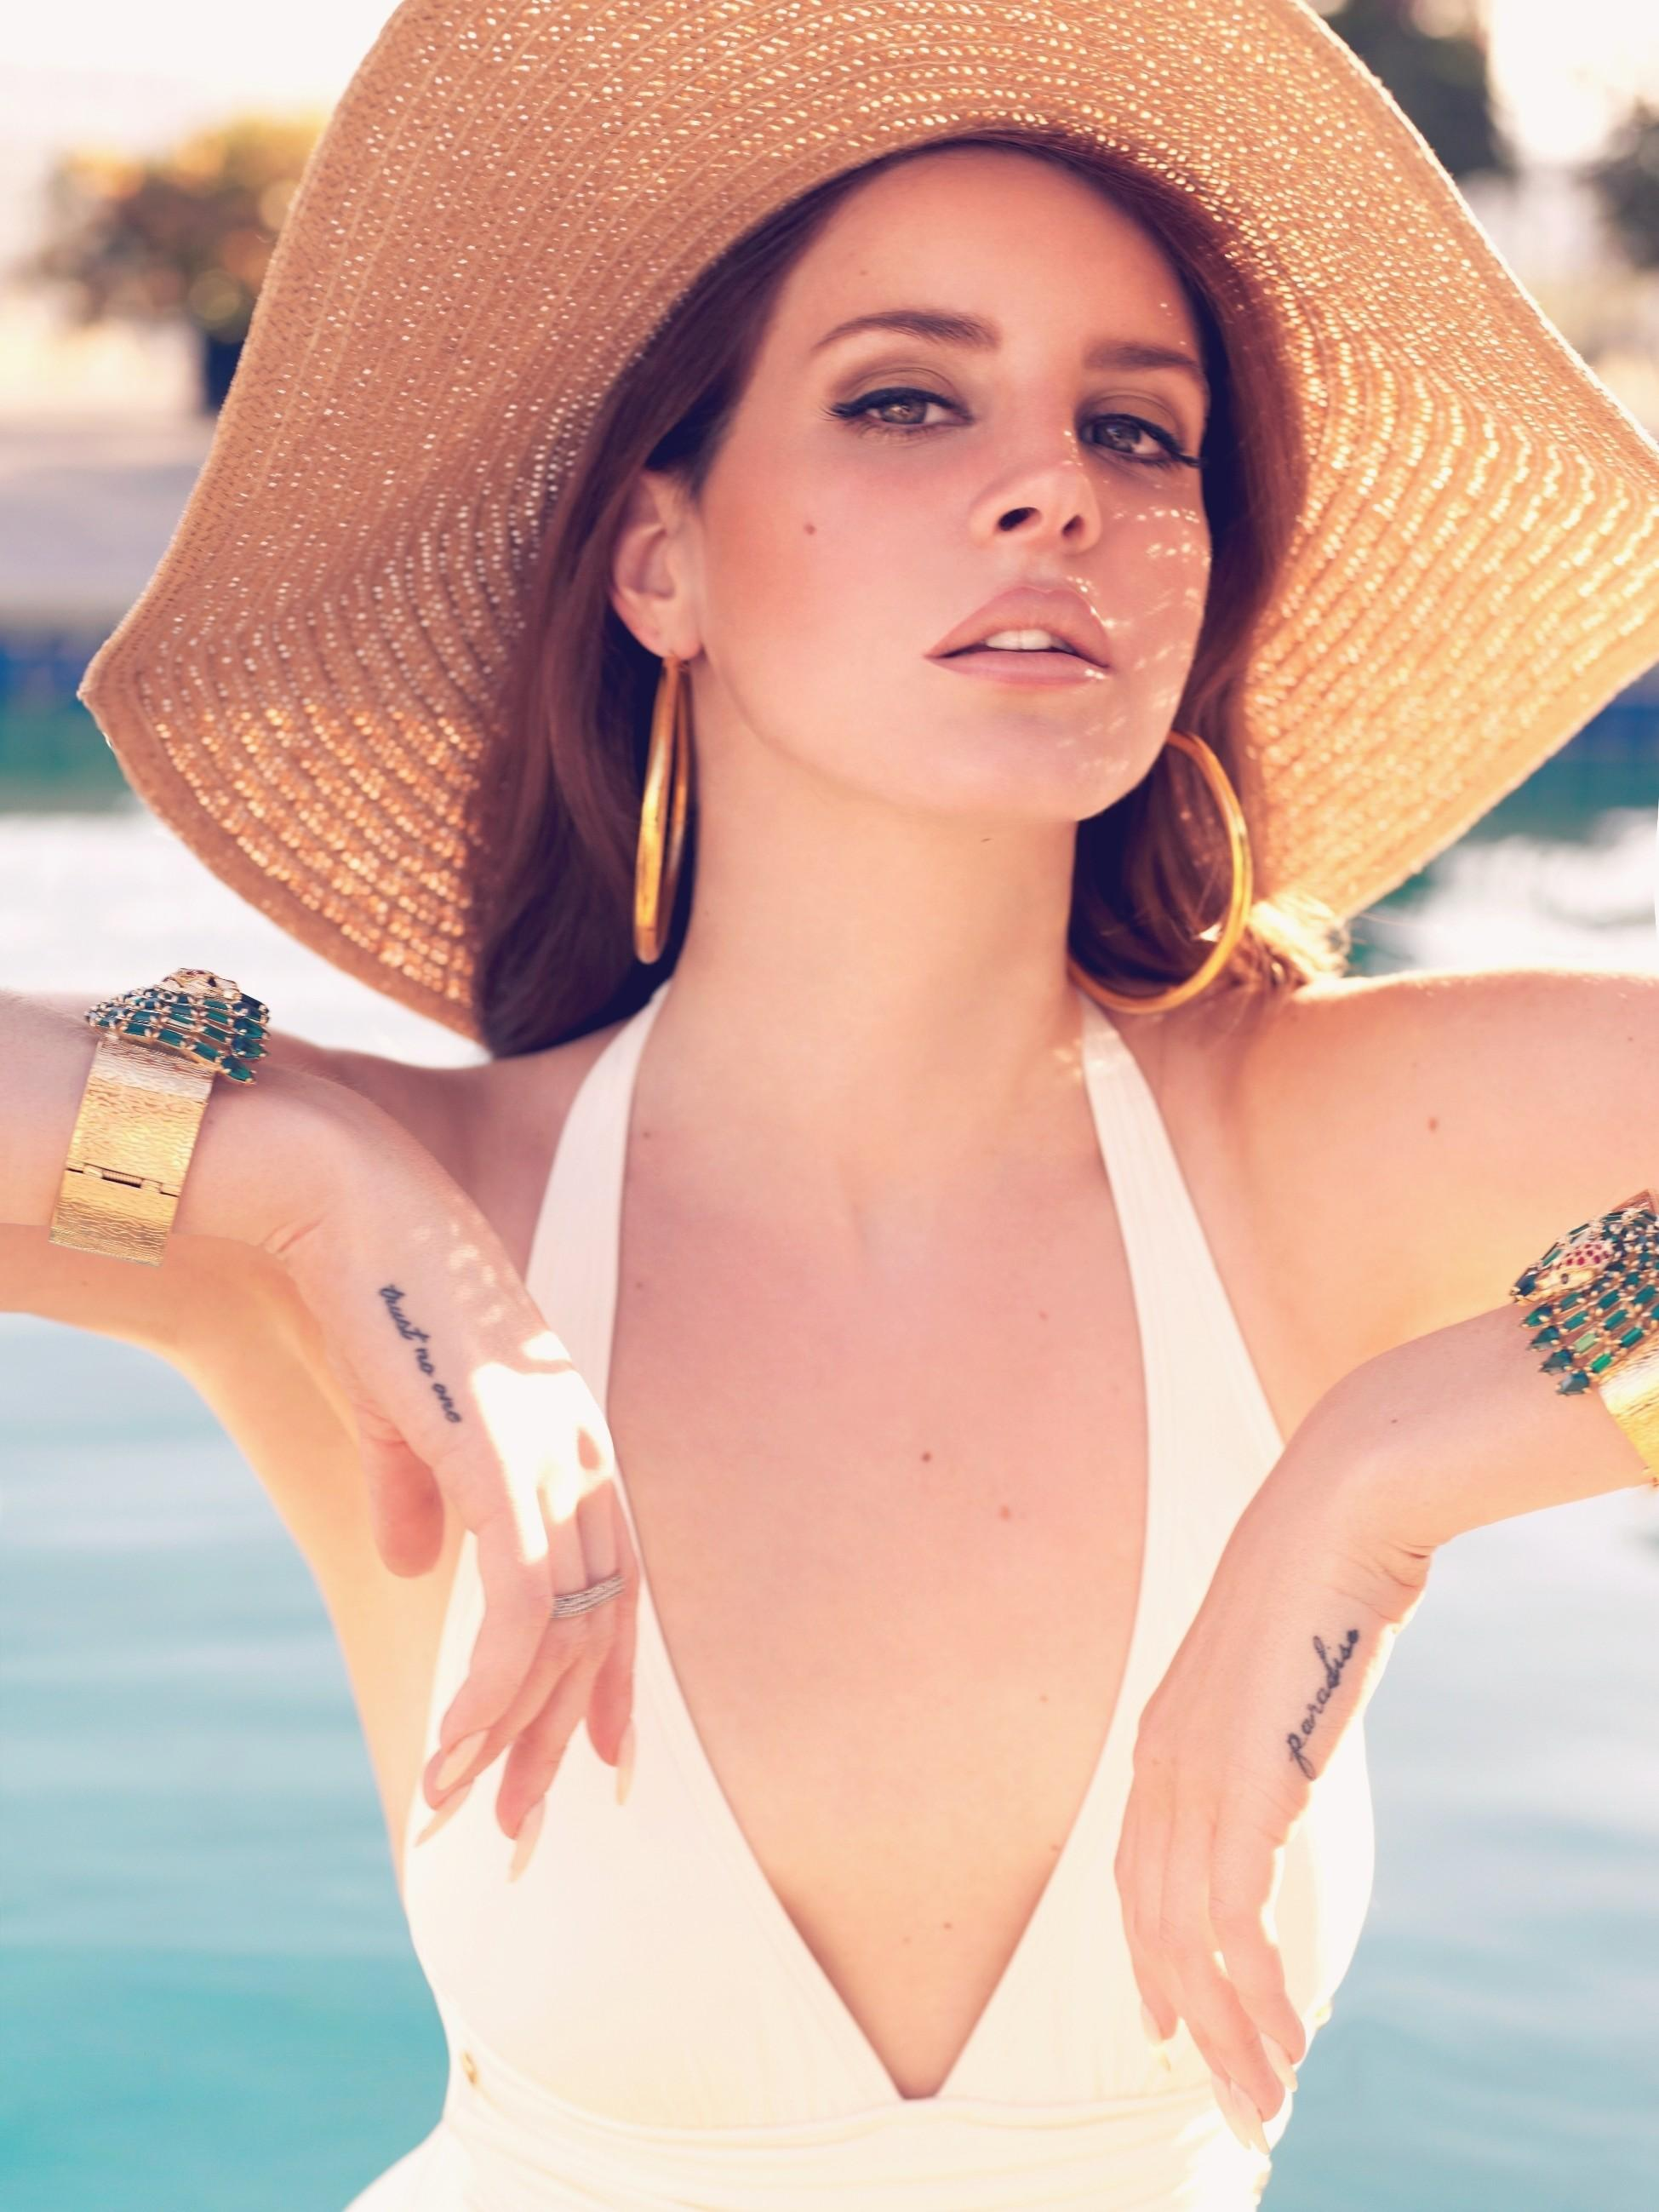 Lana Del Rey Iphone Wallpaper